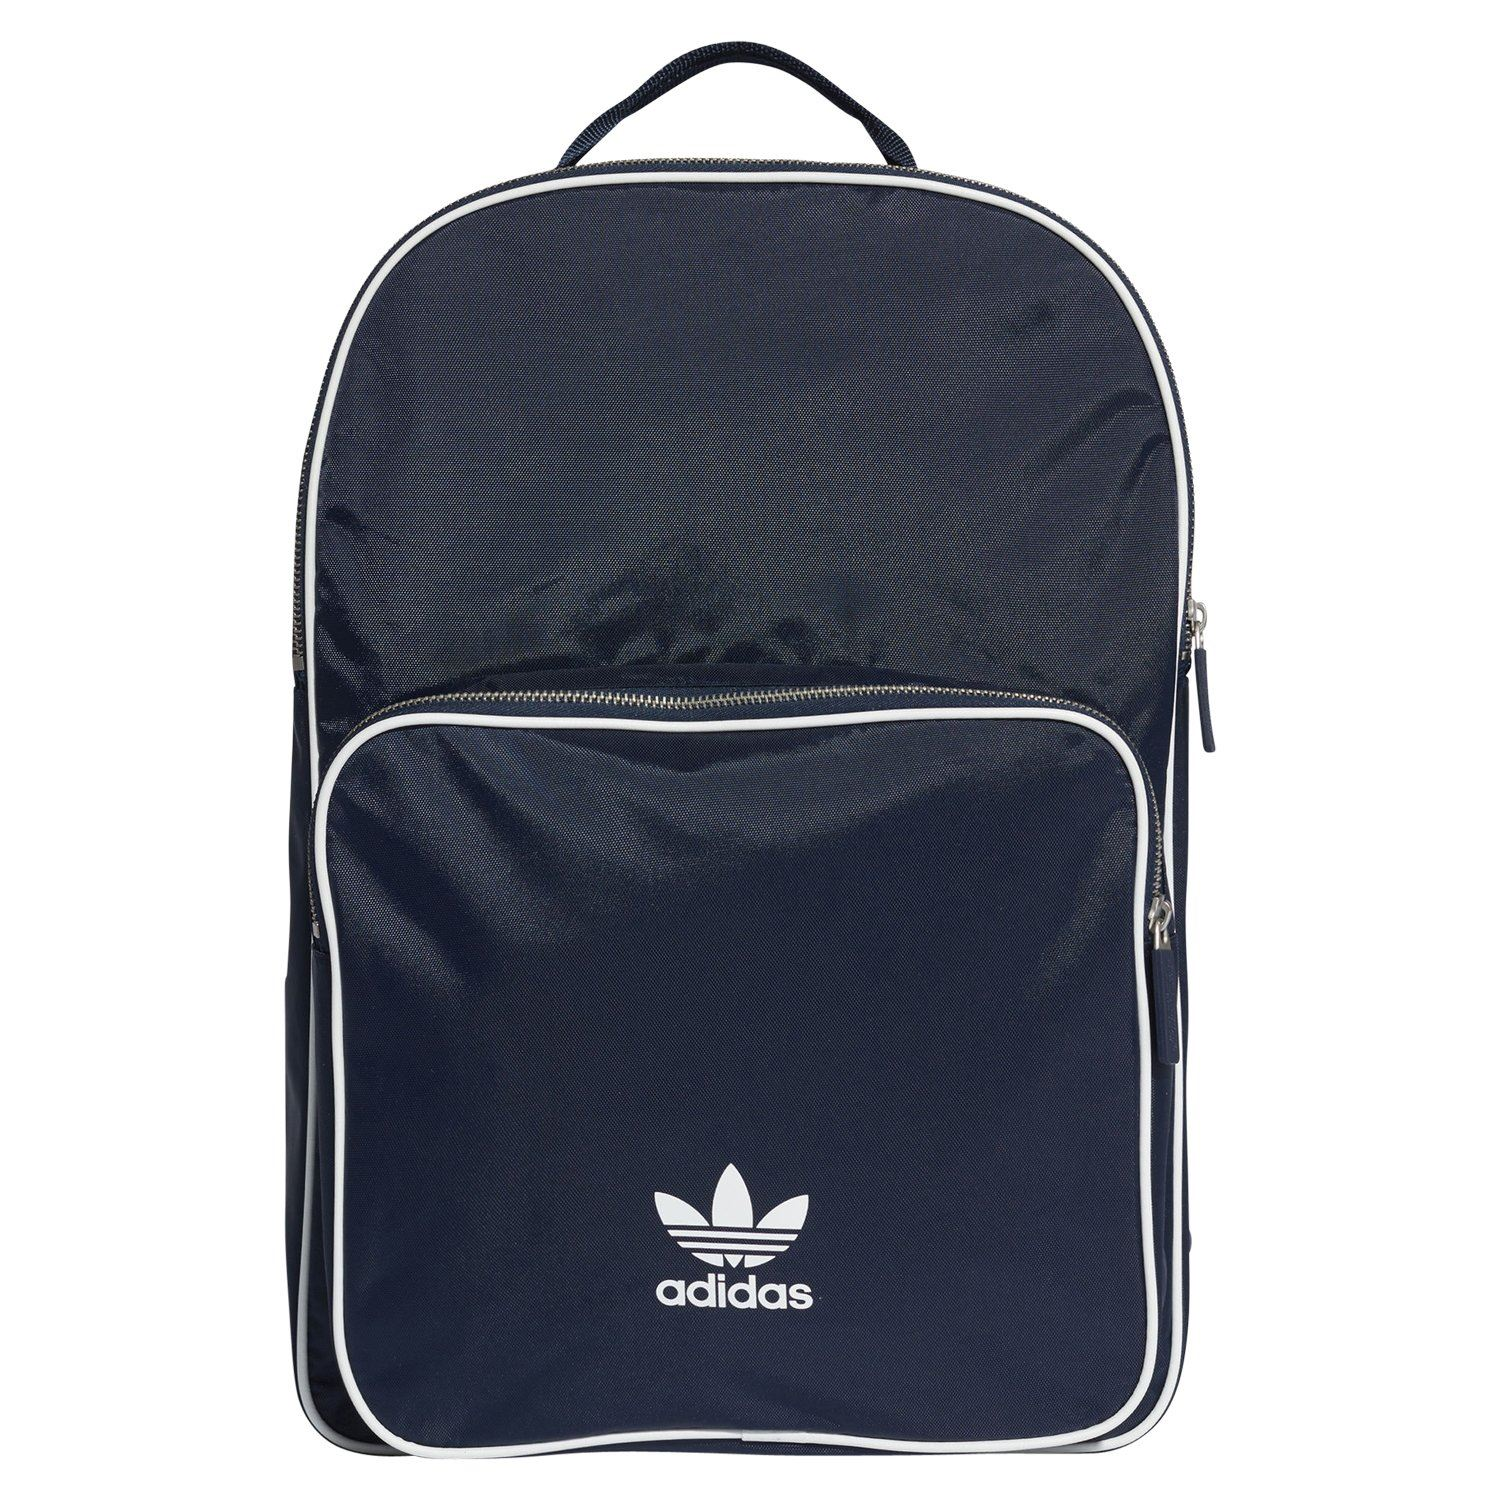 Adidas originals adicolor trefoil backpack navy bags college school  university jpg 1500x1500 Adidas college bags 5cacff95876a0